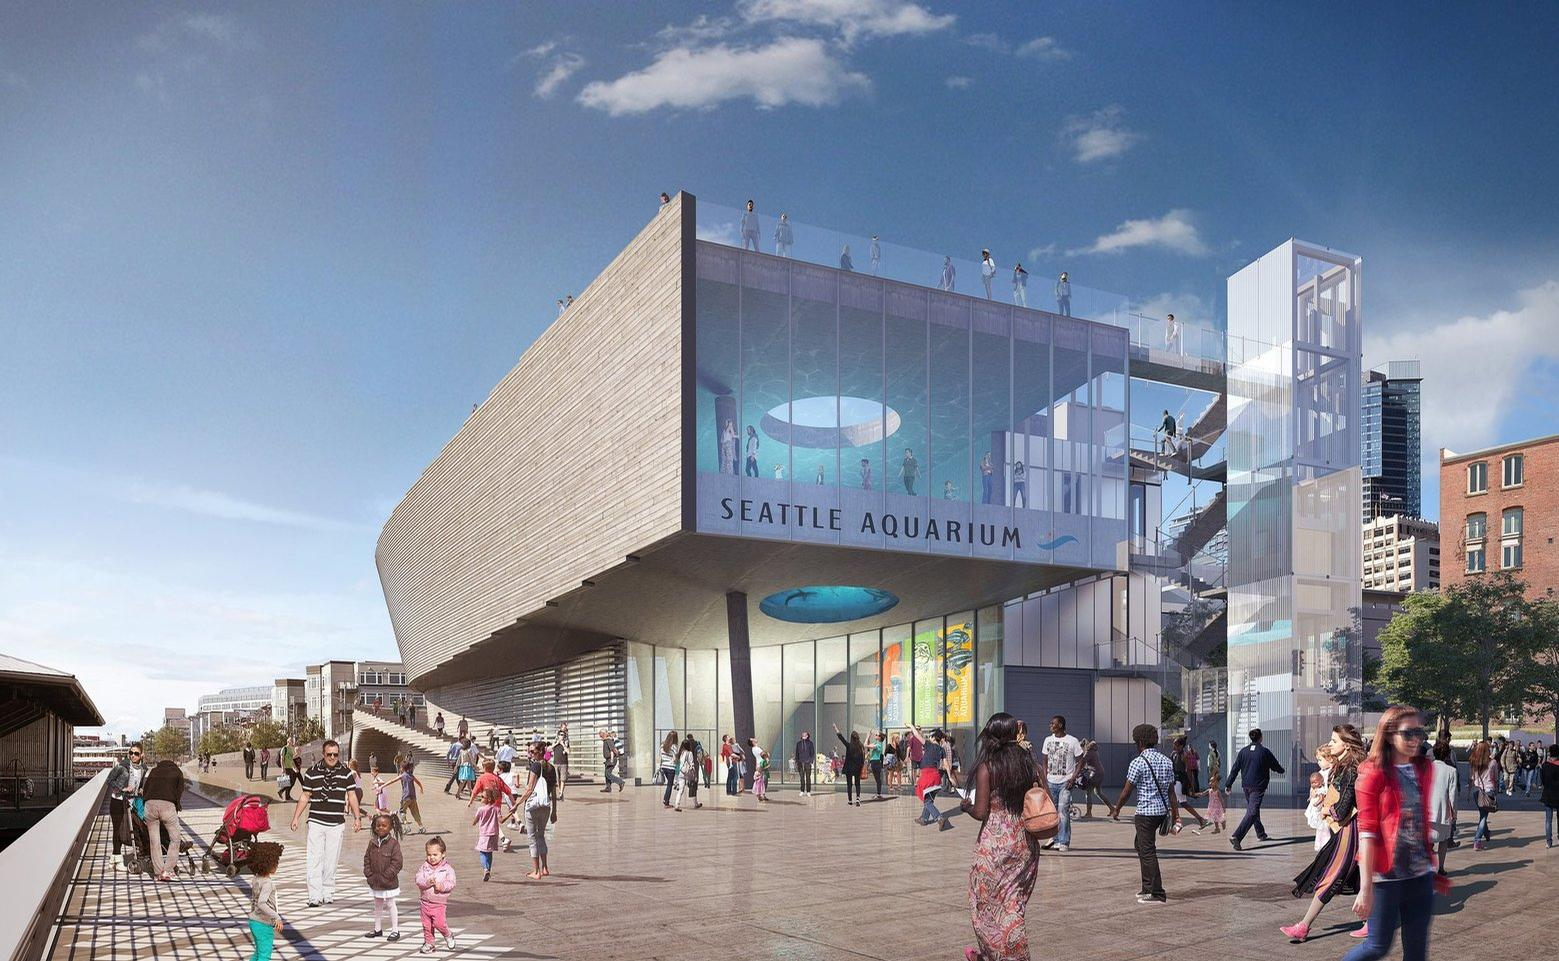 The Seattle Aquarium is expected to attract more than a million visitors a year once the city's waterfront development is complete / LMN Architects